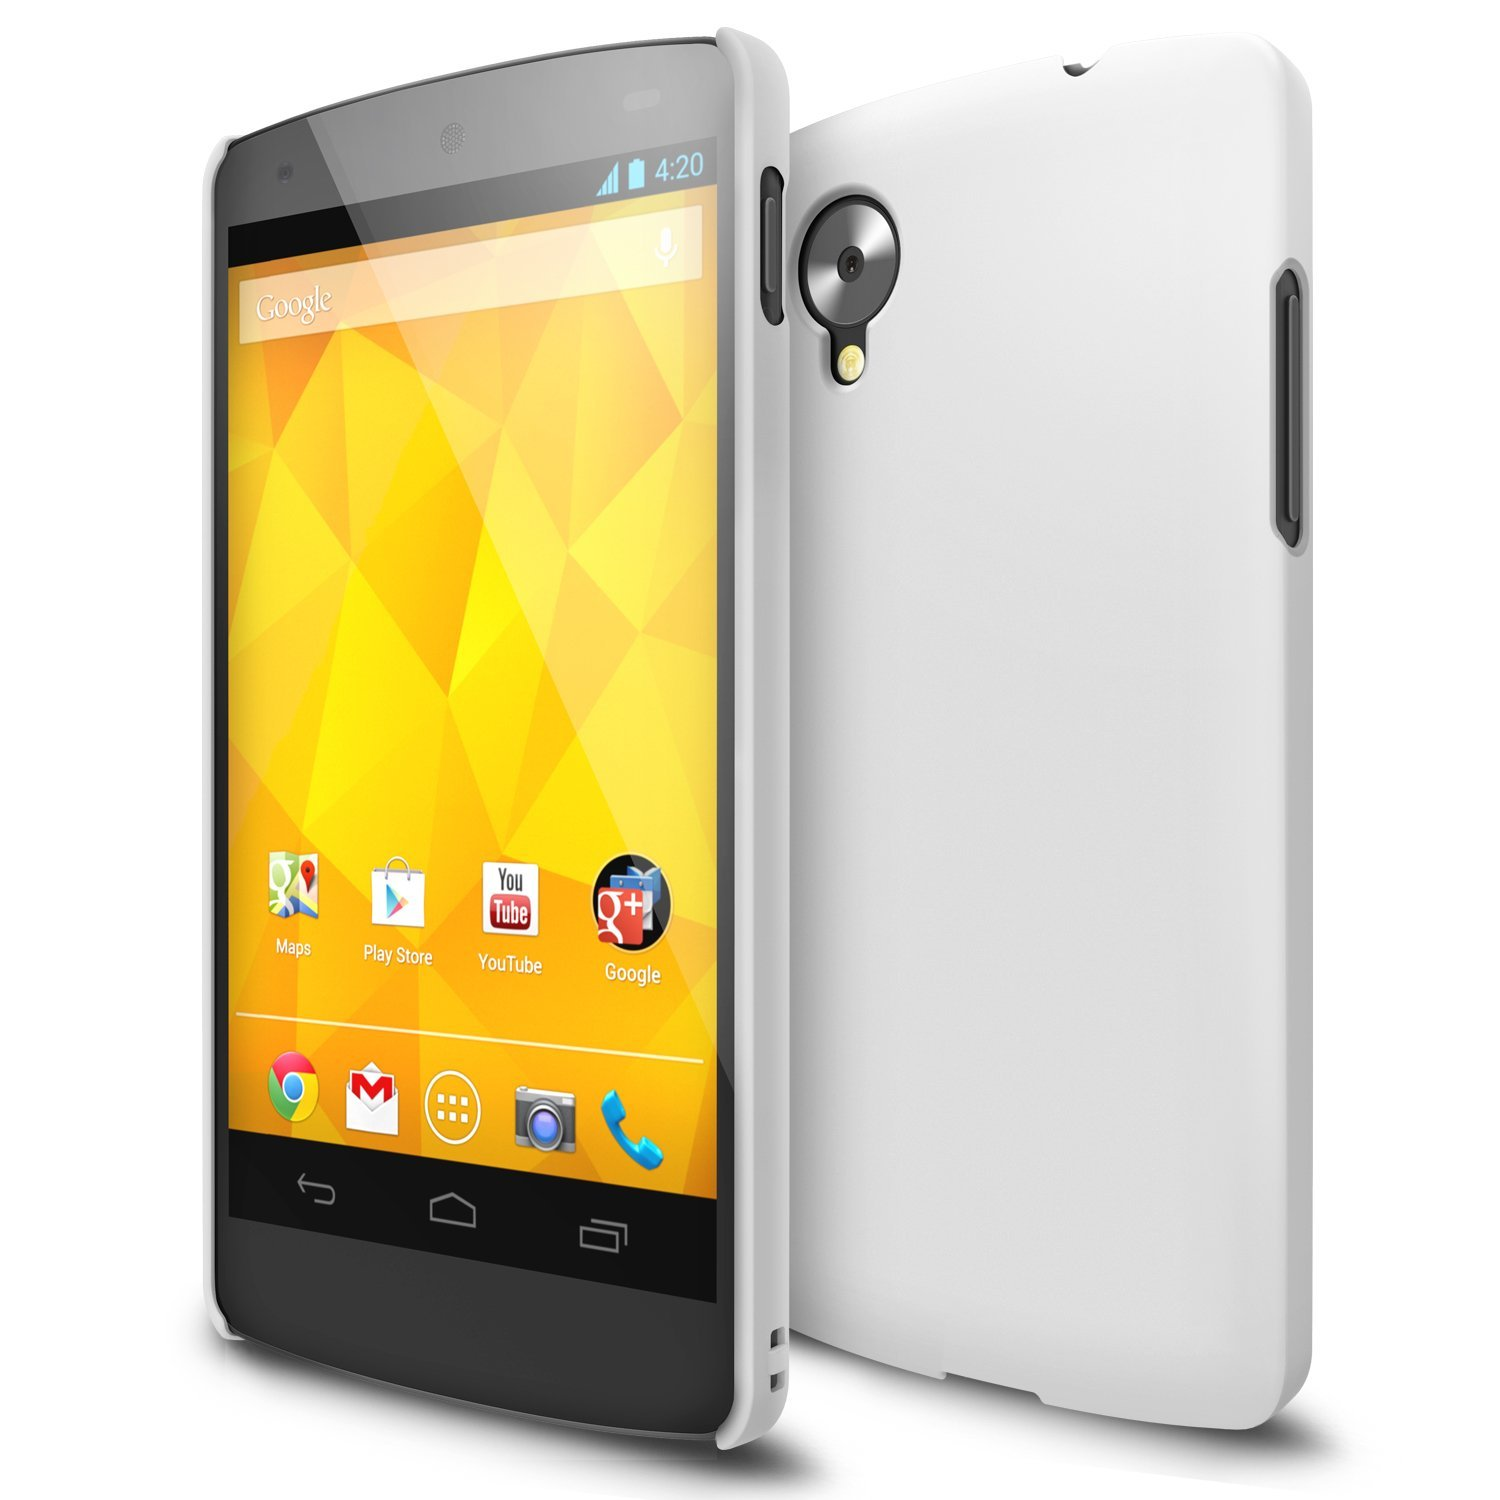 A white Ringke Slim case for the Google Nexus 5 phone, on sale at Amazon.